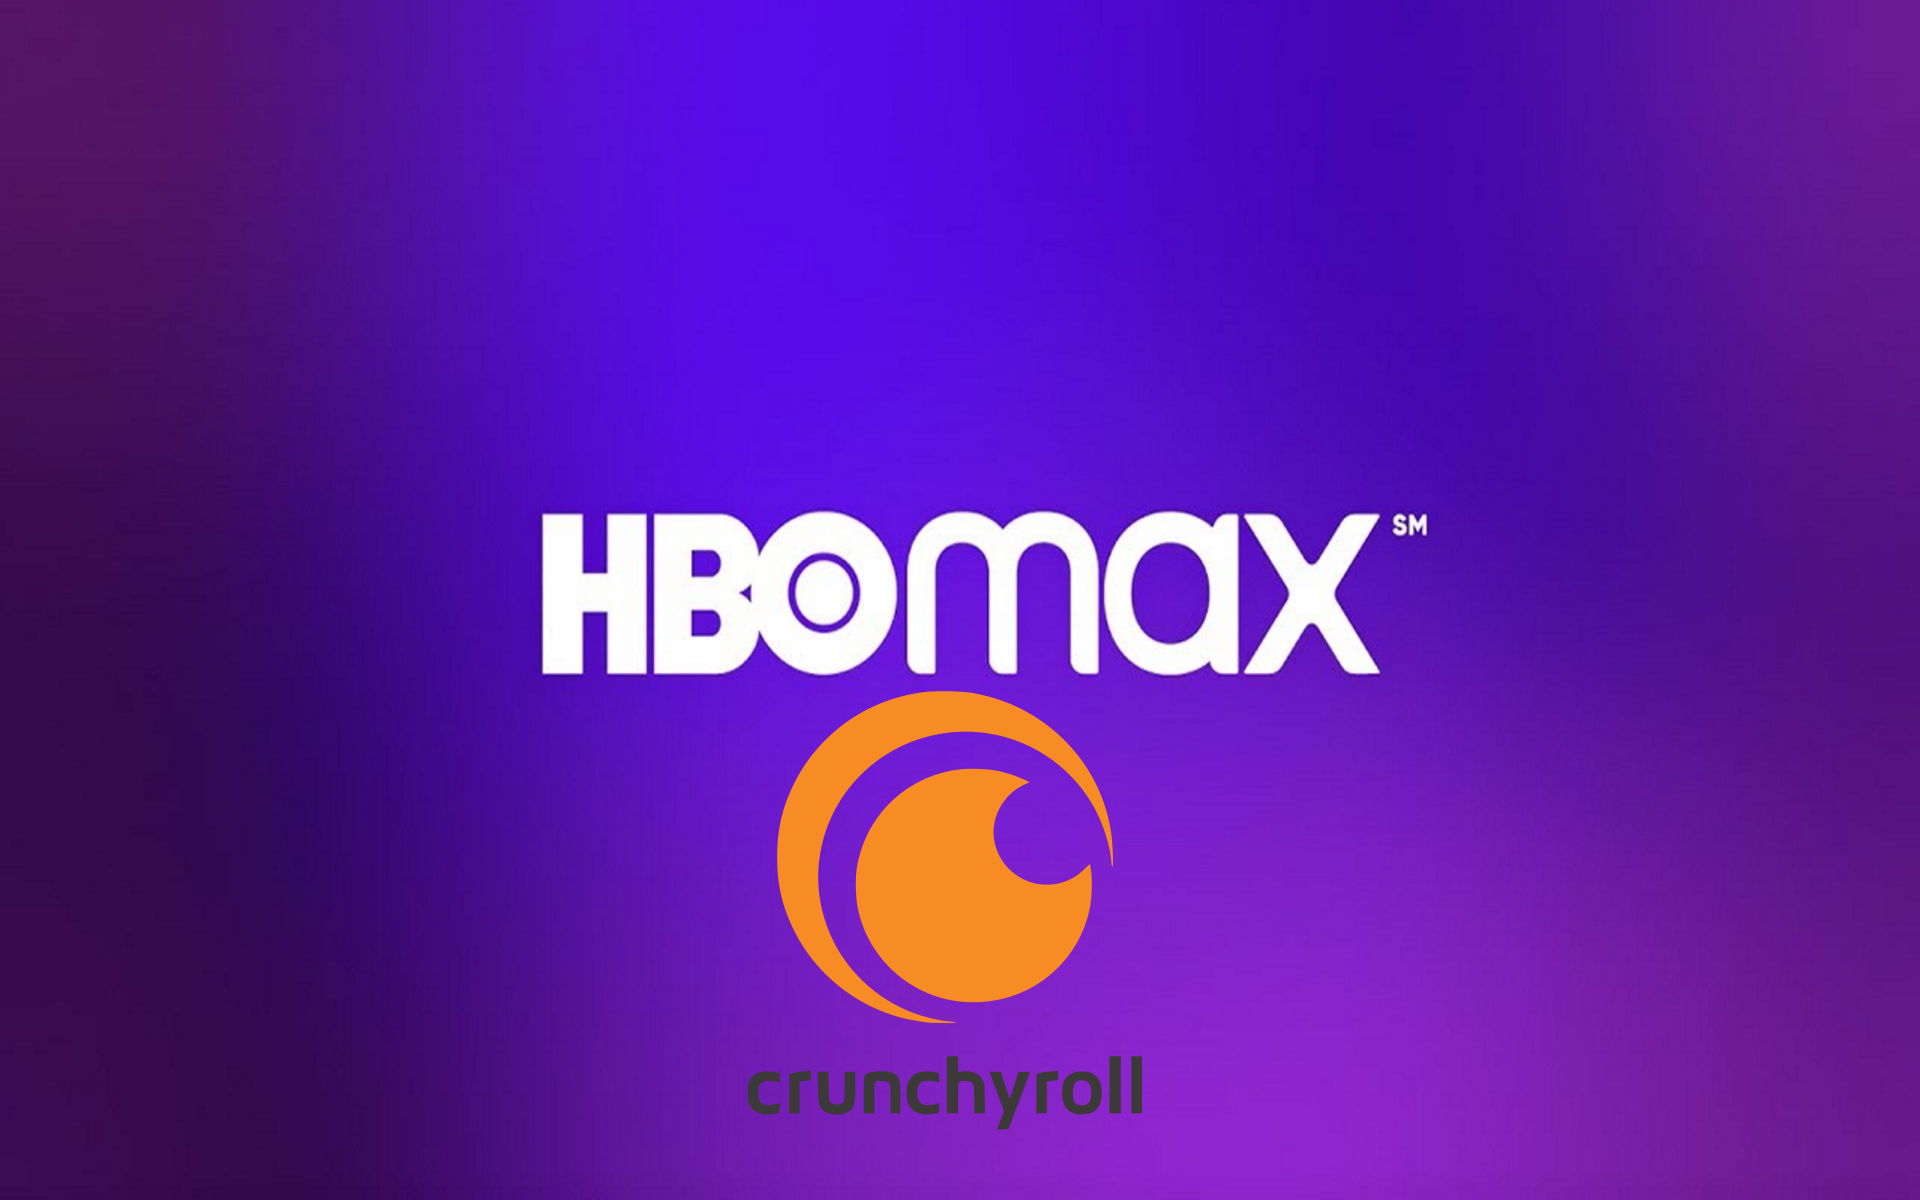 HBO MAX and Crunchyroll Team up to Bring Fans More Anime on May 27th